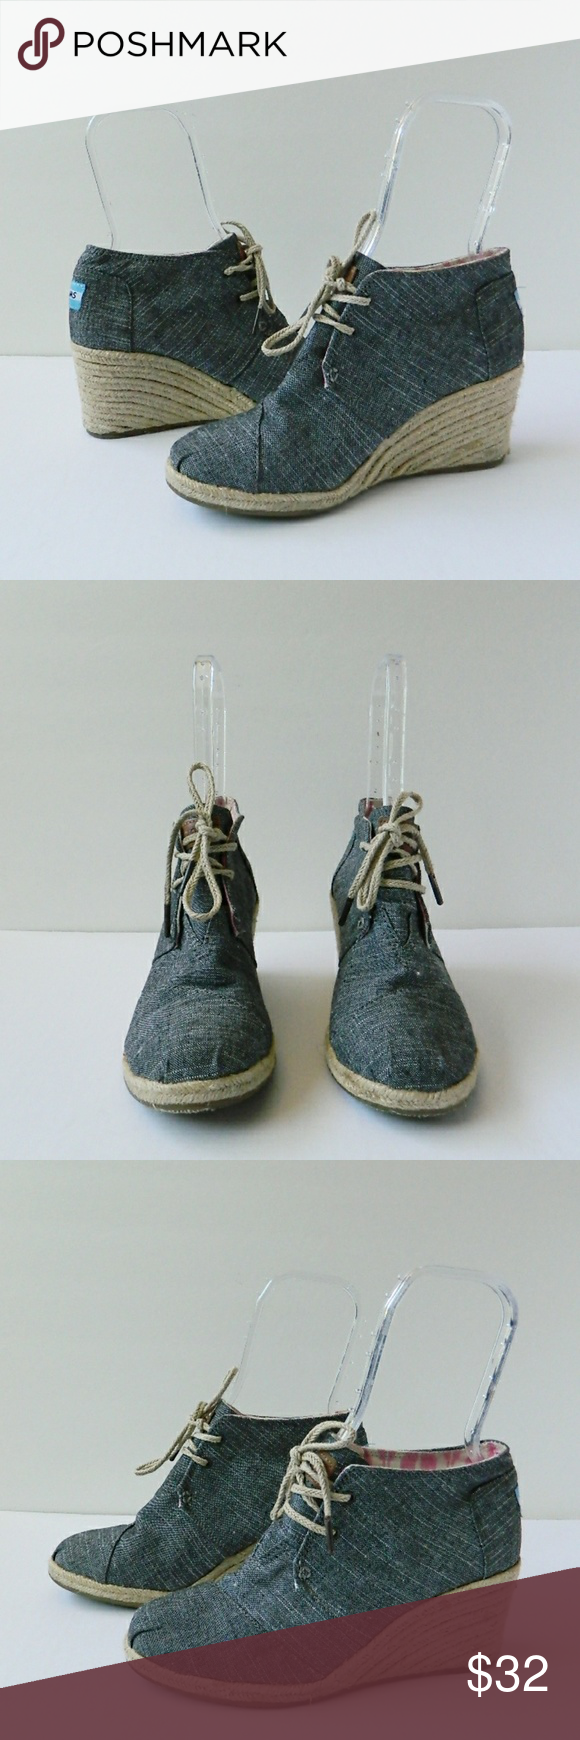 """Toms Dessert Wedge Chambray Lace Up Espadrille 8 In excellent used condition espadrille wedge by Toms.  Looks like a denim fabric with pink ikat pattern inside. Only real wear is on soles.  Measurements: 3"""" heel, 9.5"""" insole. TOMS Shoes Espadrilles"""